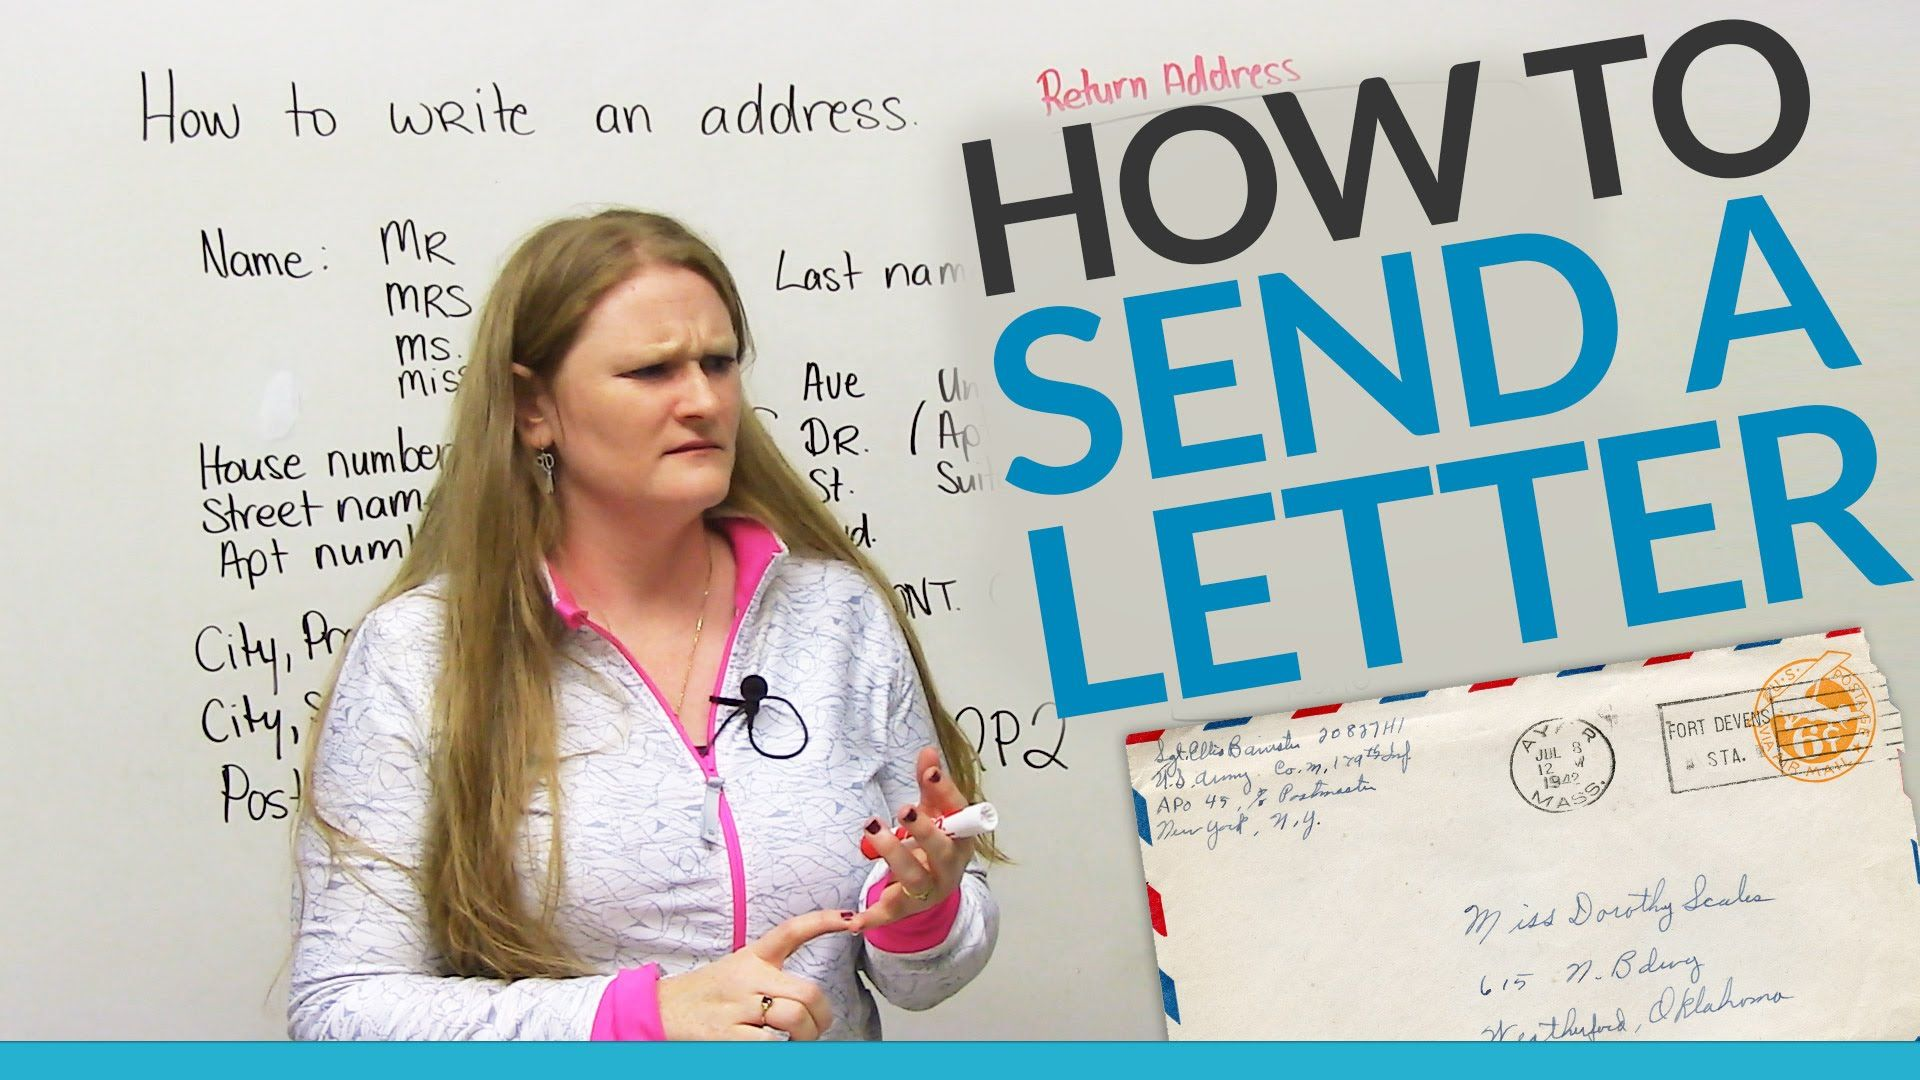 In this useful lesson, you will learn how to send a letter